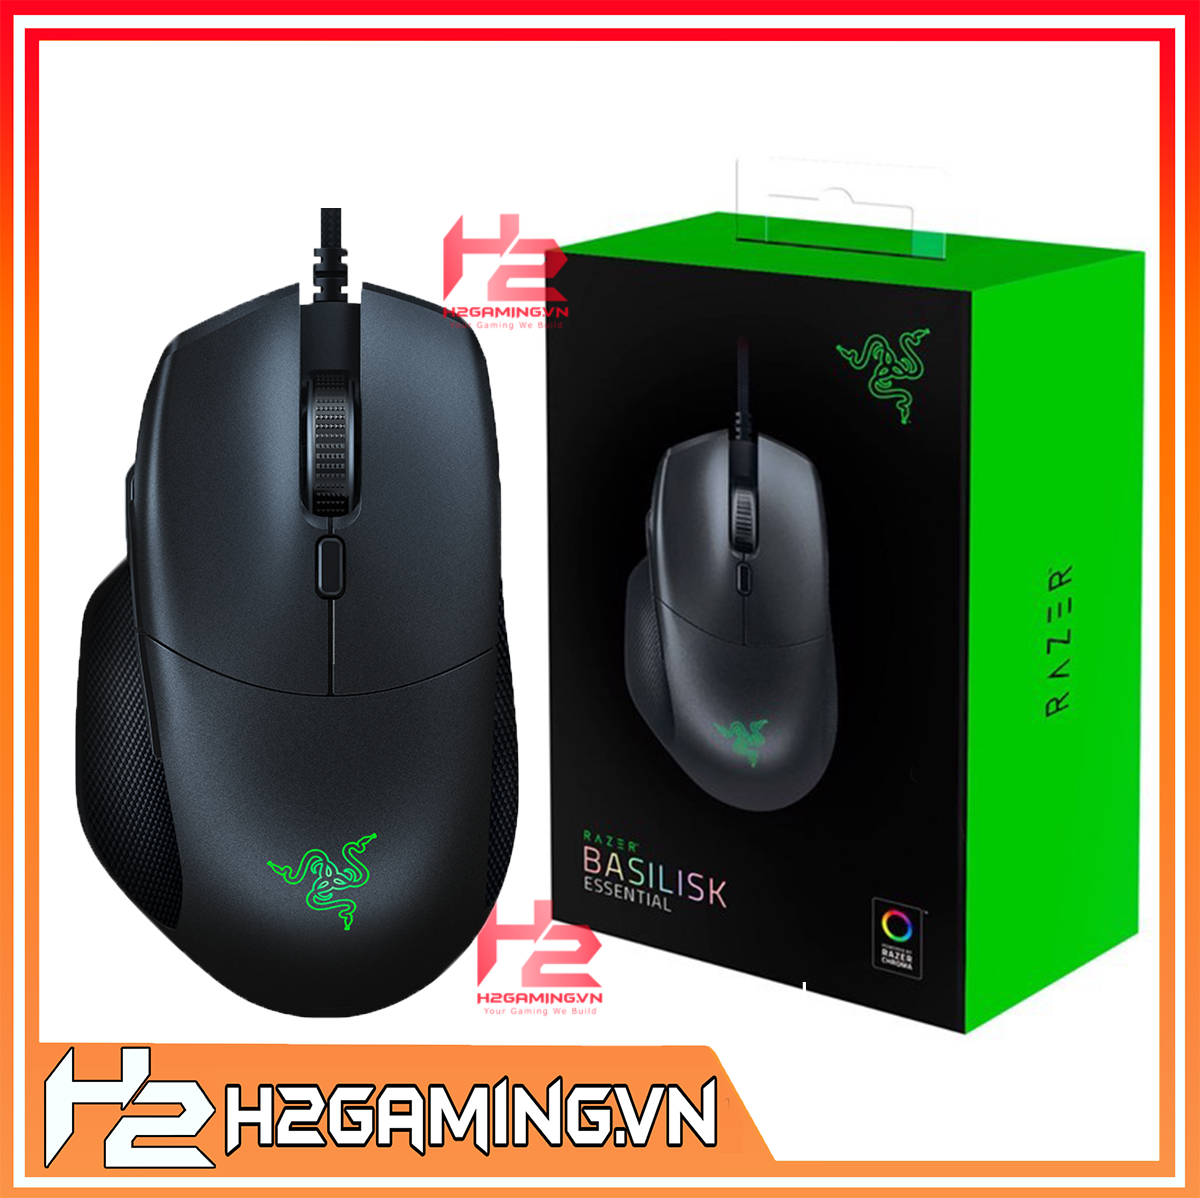 Razer_Basilisk_Essential_Gaming